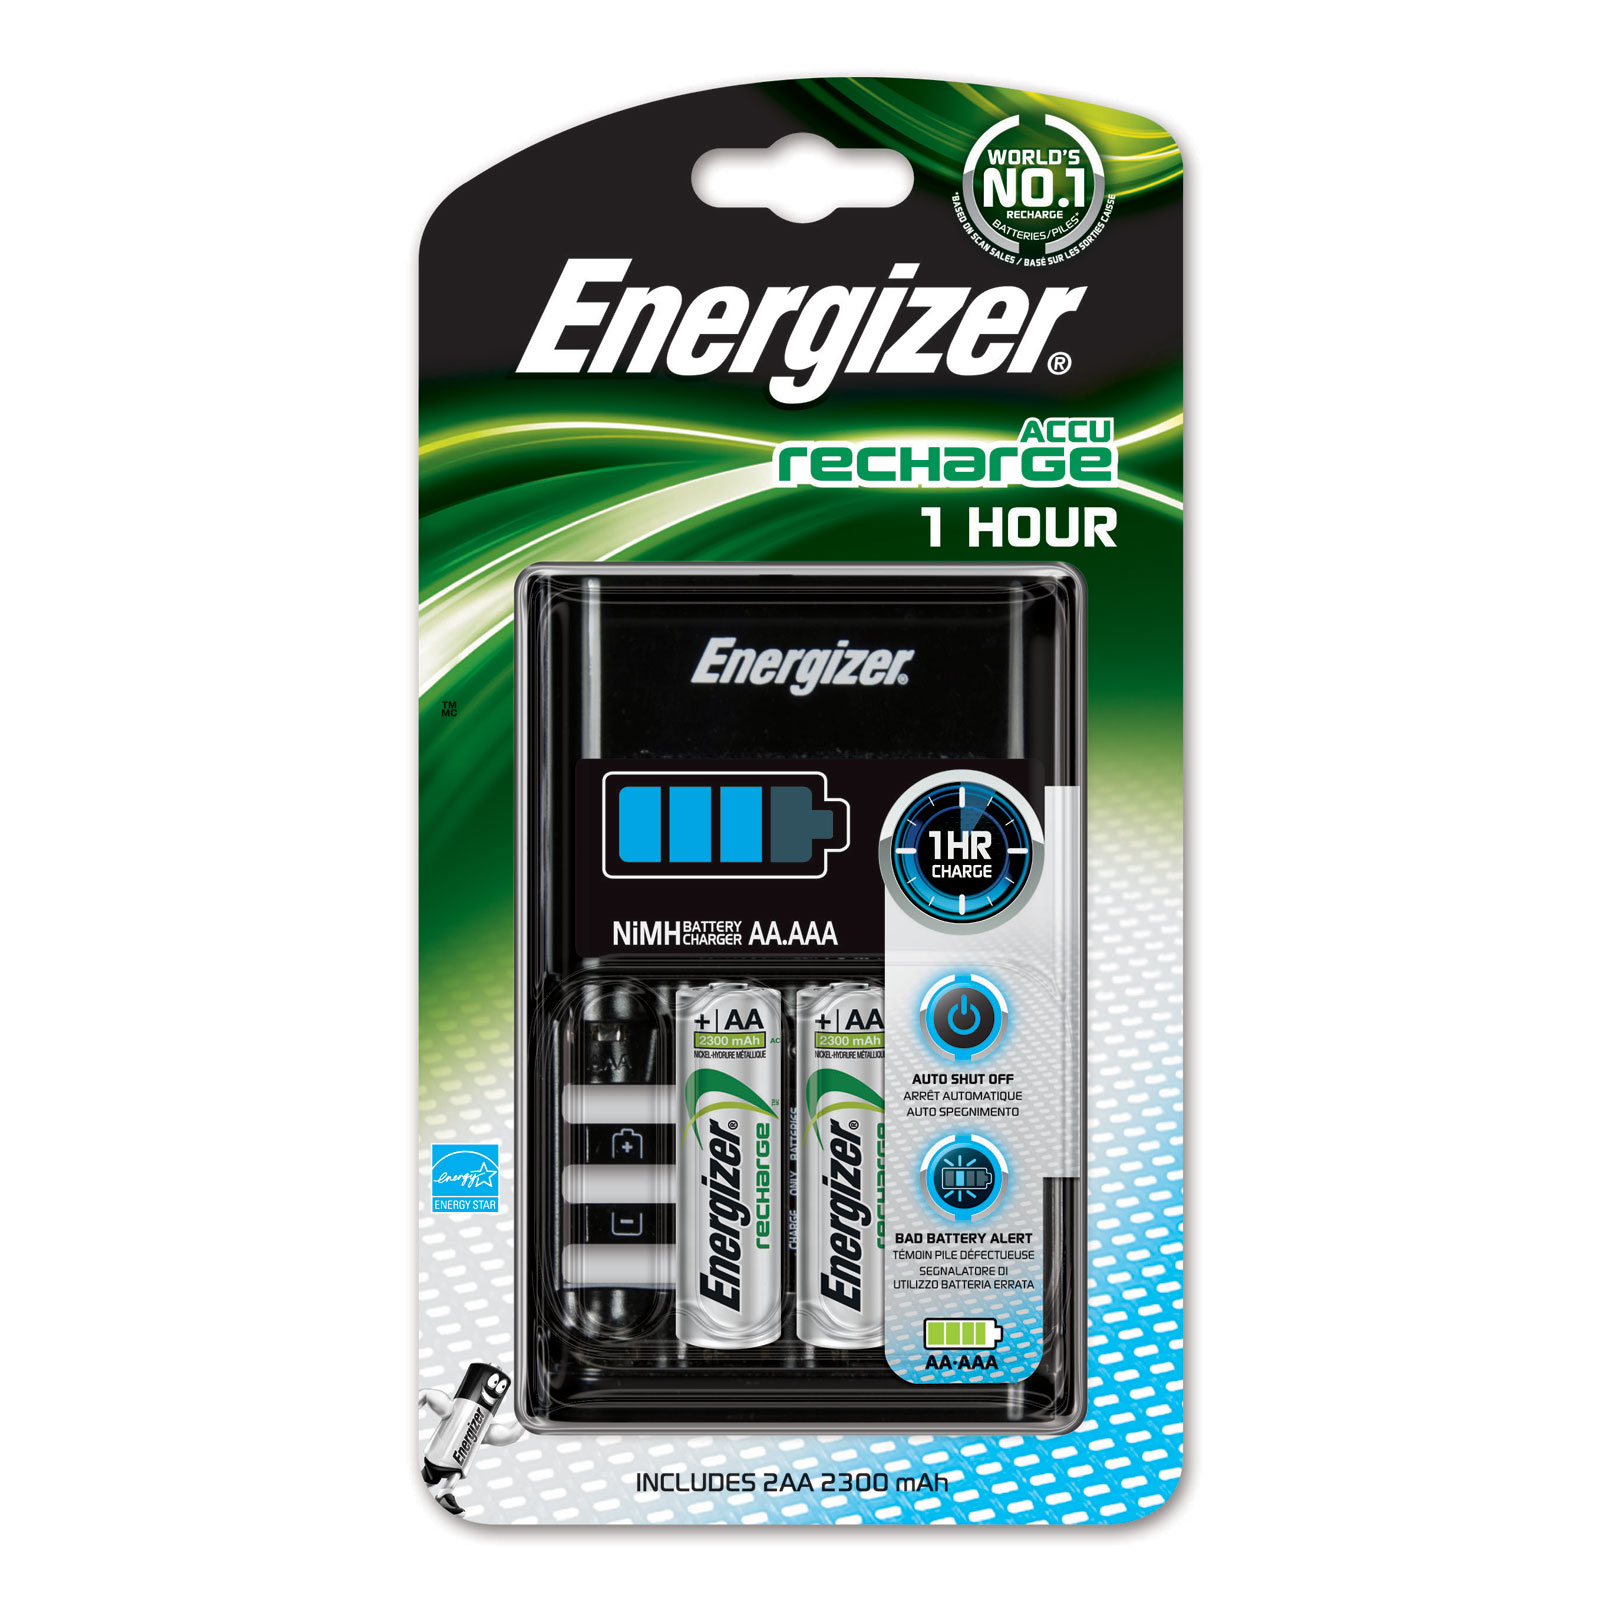 energizer accu recharge 1 hour pile chargeur energizer. Black Bedroom Furniture Sets. Home Design Ideas